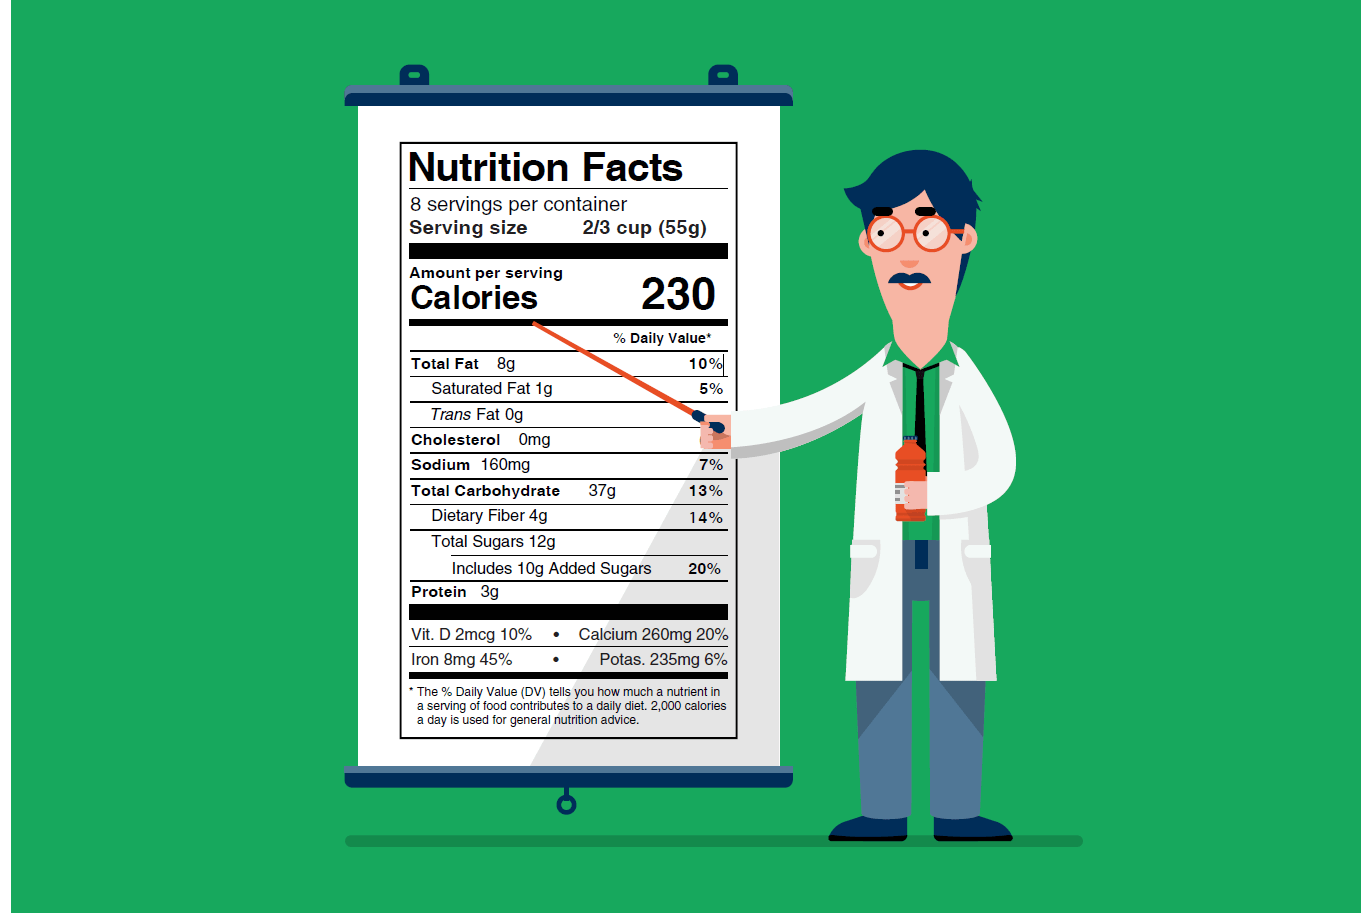 Upcoming Fda Changes To The Nutrition Facts Label